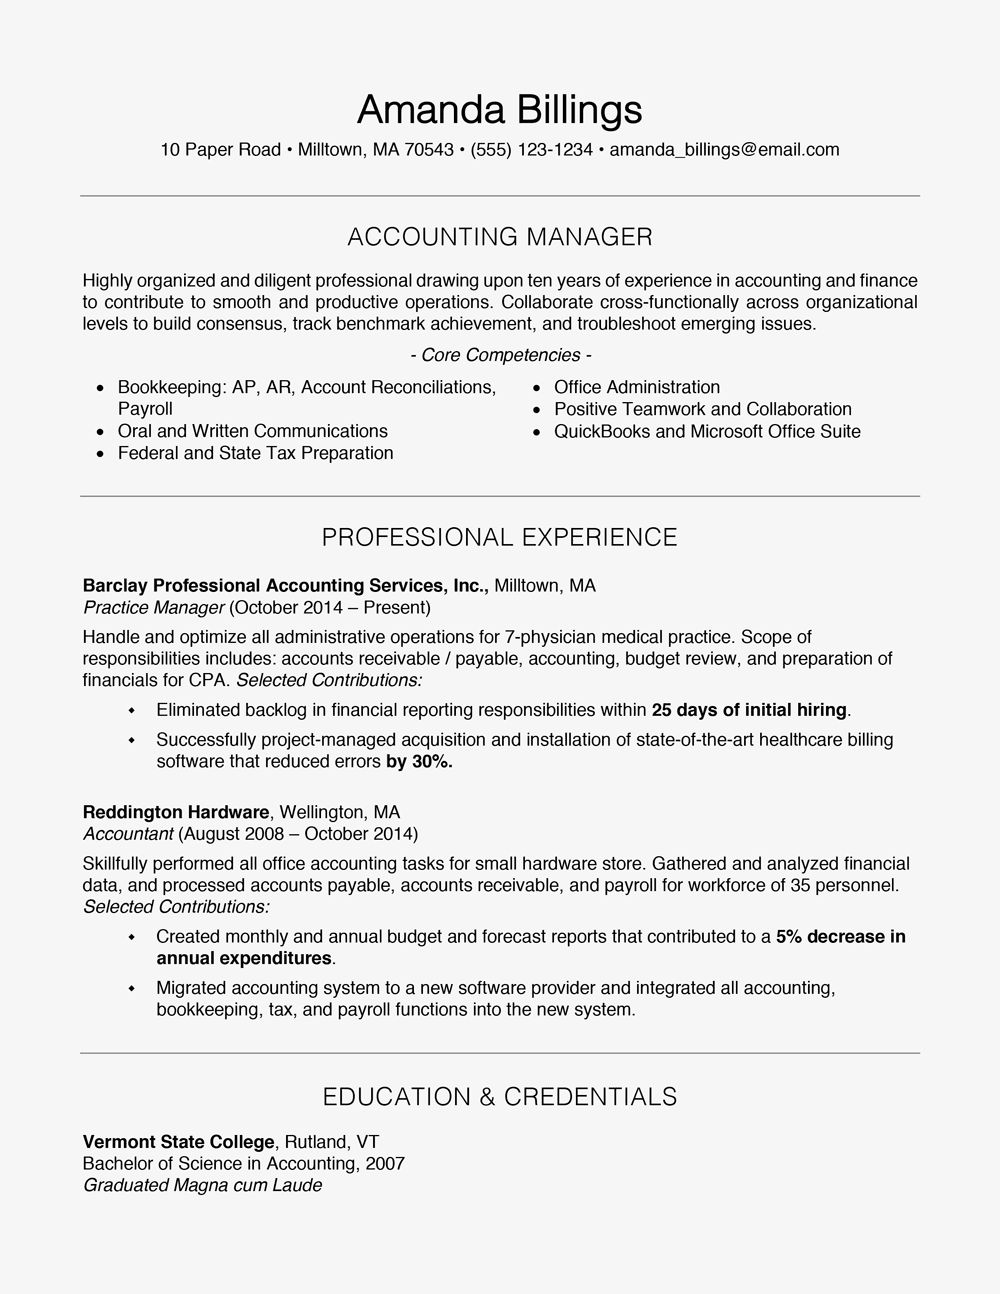 100 free professional resume examples and writing tips - How To Build A Professional Resume